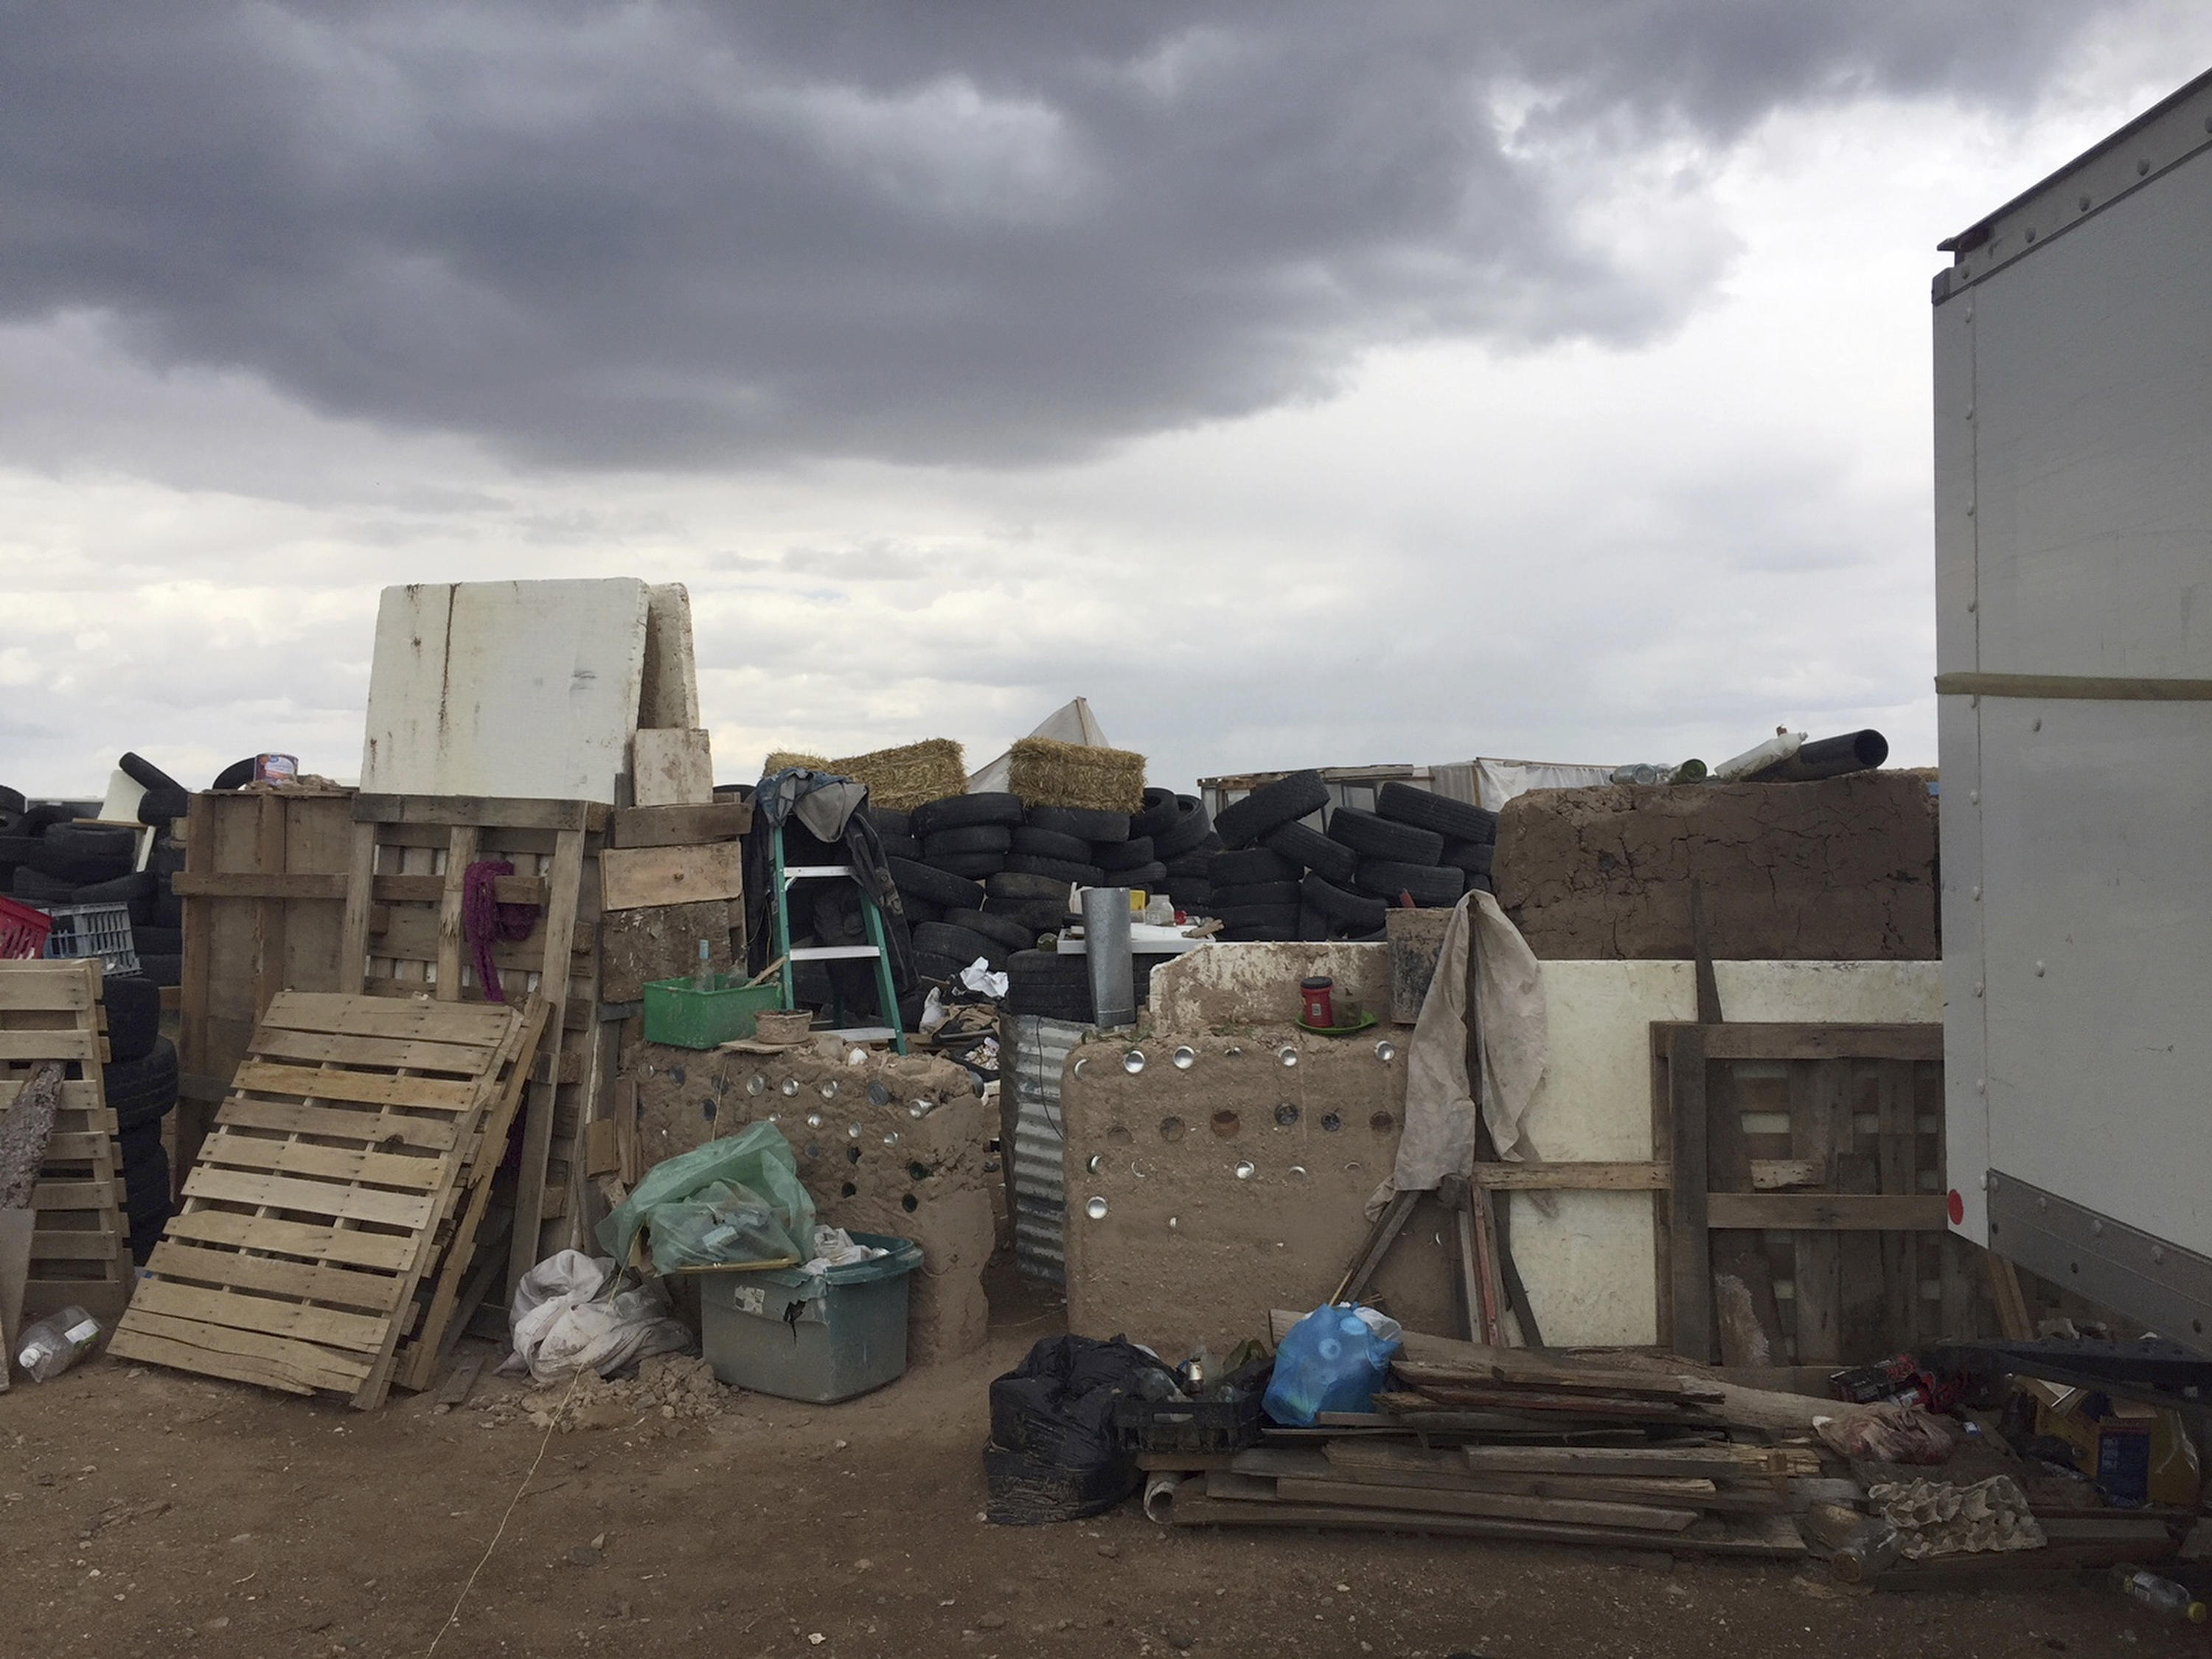 Man at filthy New Mexico compound was training kids to